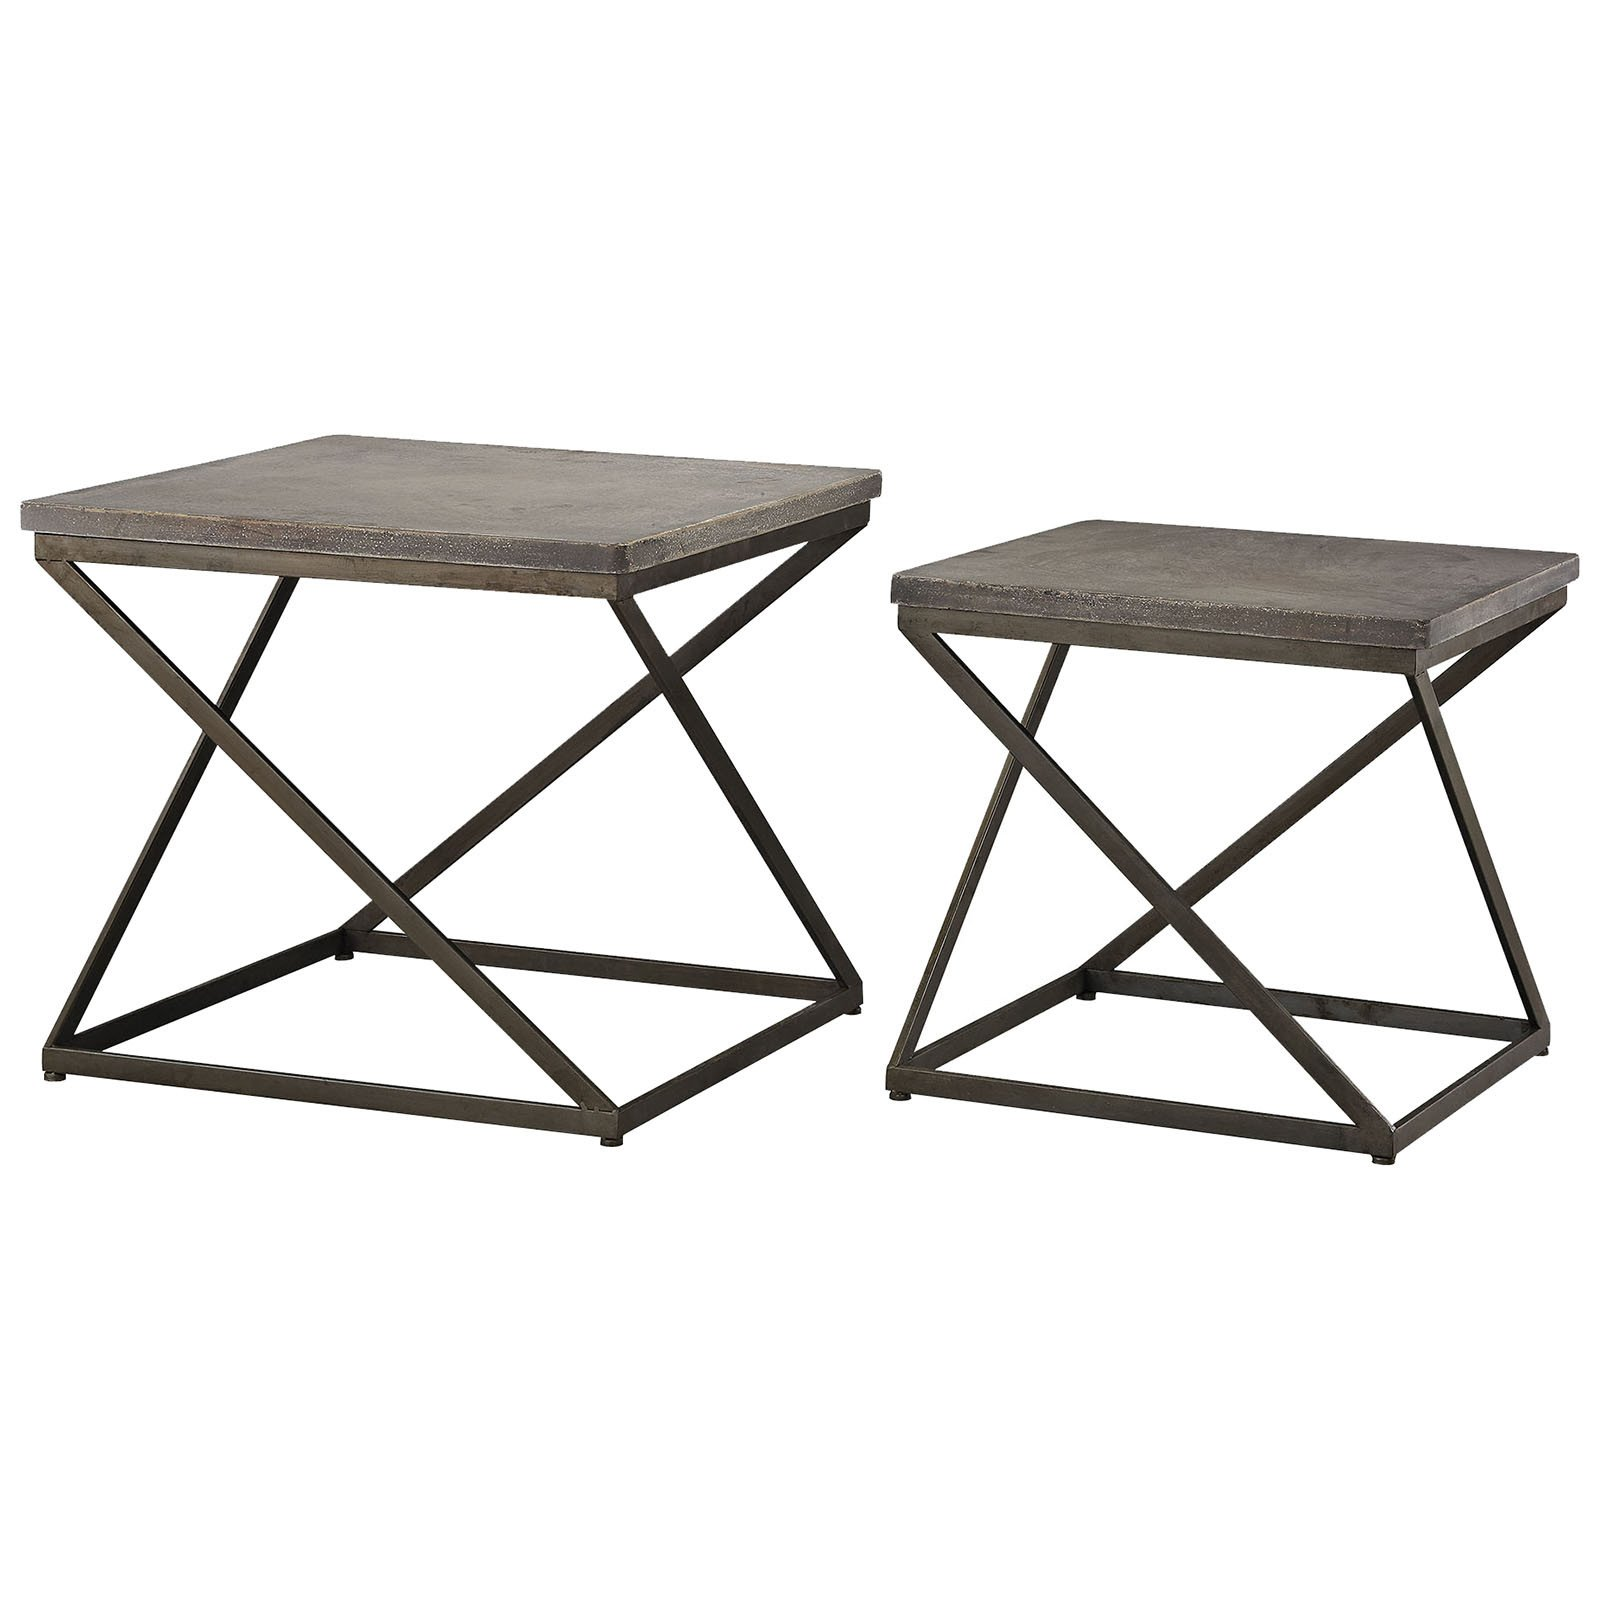 brown accent tables contemporary metal outdoor concrete table moya aged iron and set baroque furniture colorful coffee round kitchen tablecloths lounge room soccer game quilt